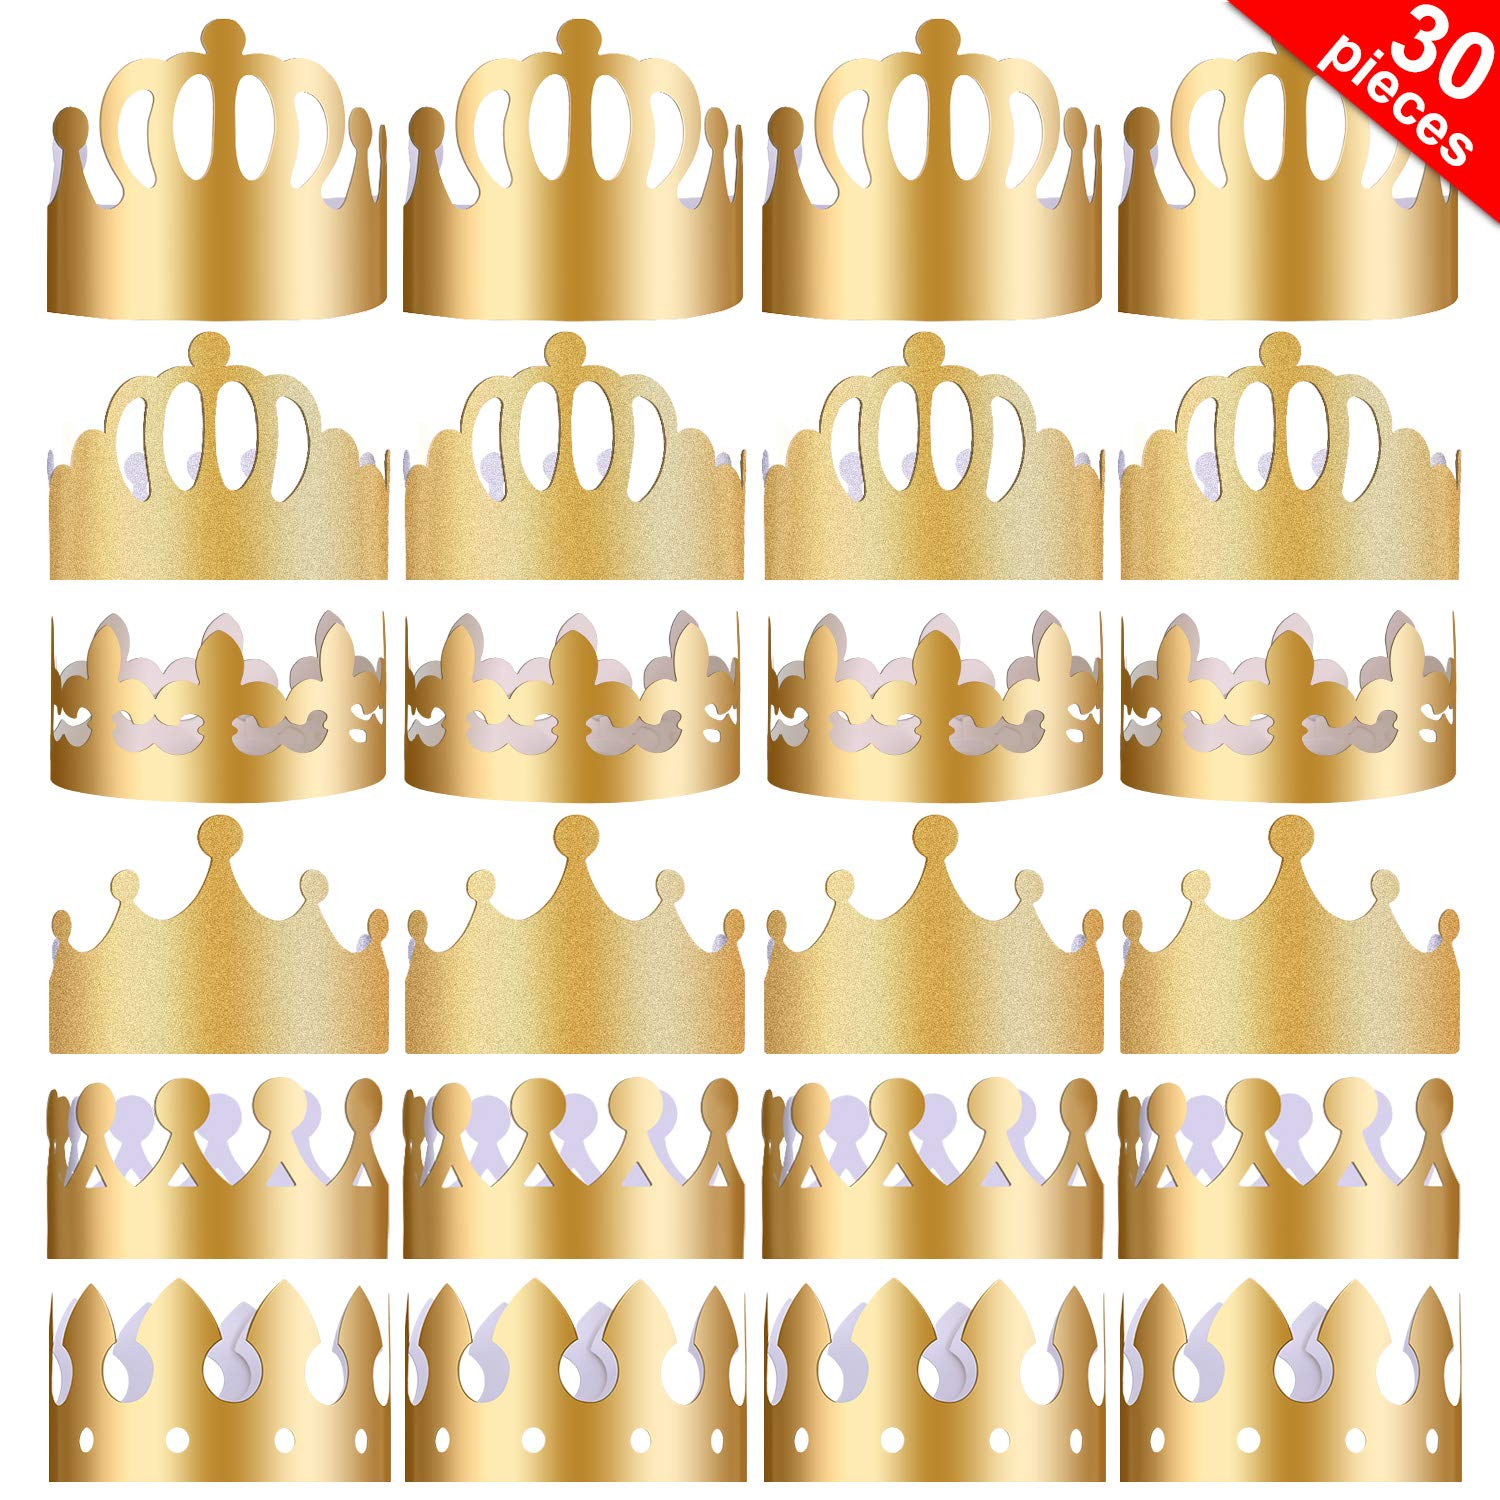 Yaomiao 30 Pieces Paper Party Crowns Gold Crown Hats King Crown for Birthday Party Photo Props